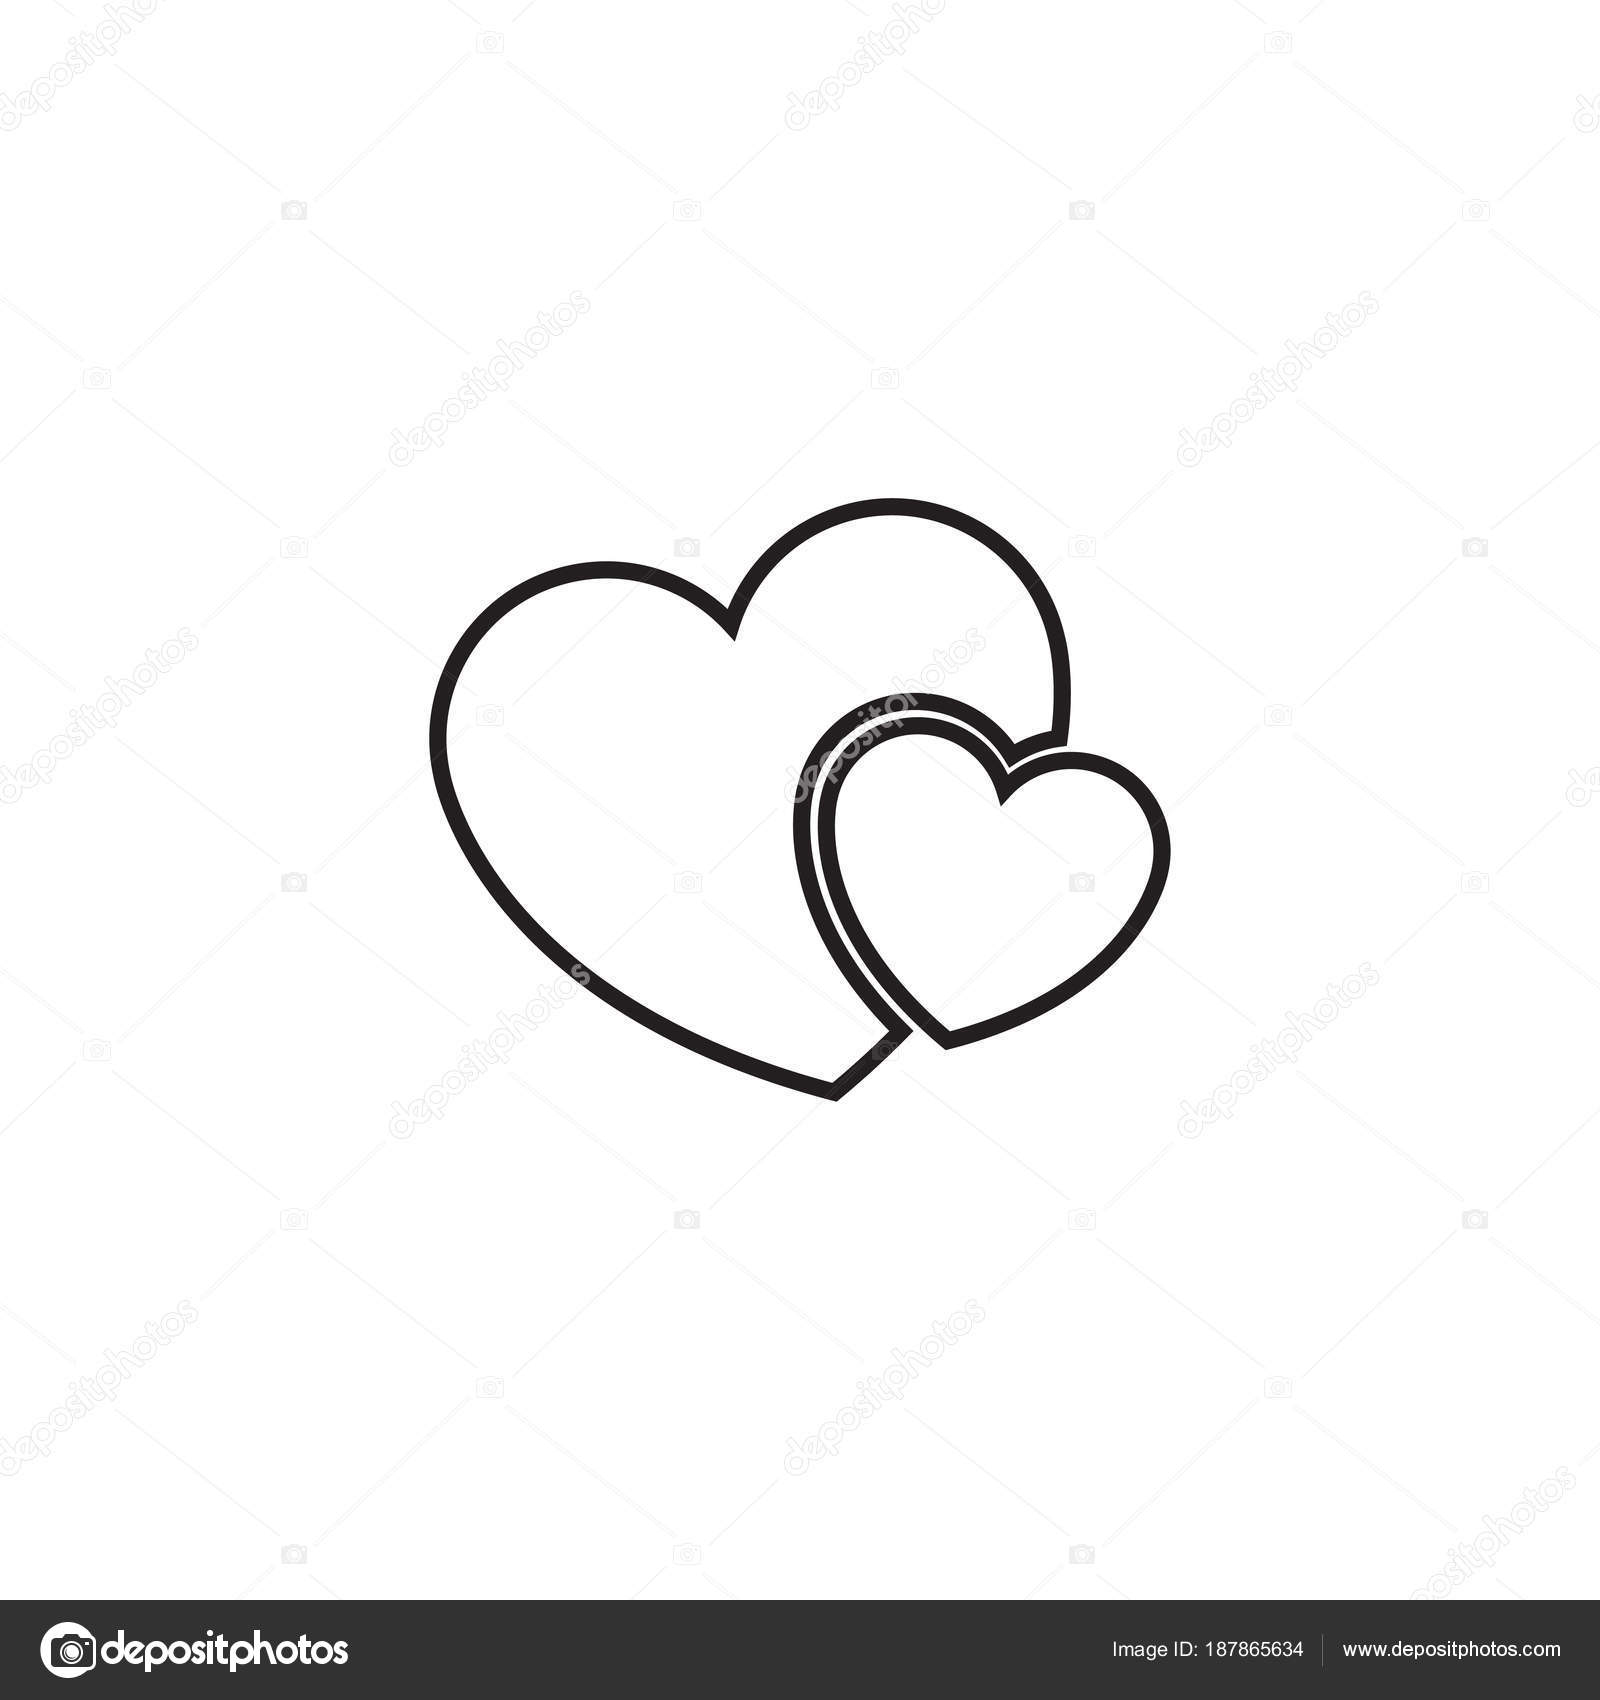 two hearts line icon vector simple heart symbol or love sign rh depositphotos com Wedding Heart Illustrations Wedding Heart Silhouette